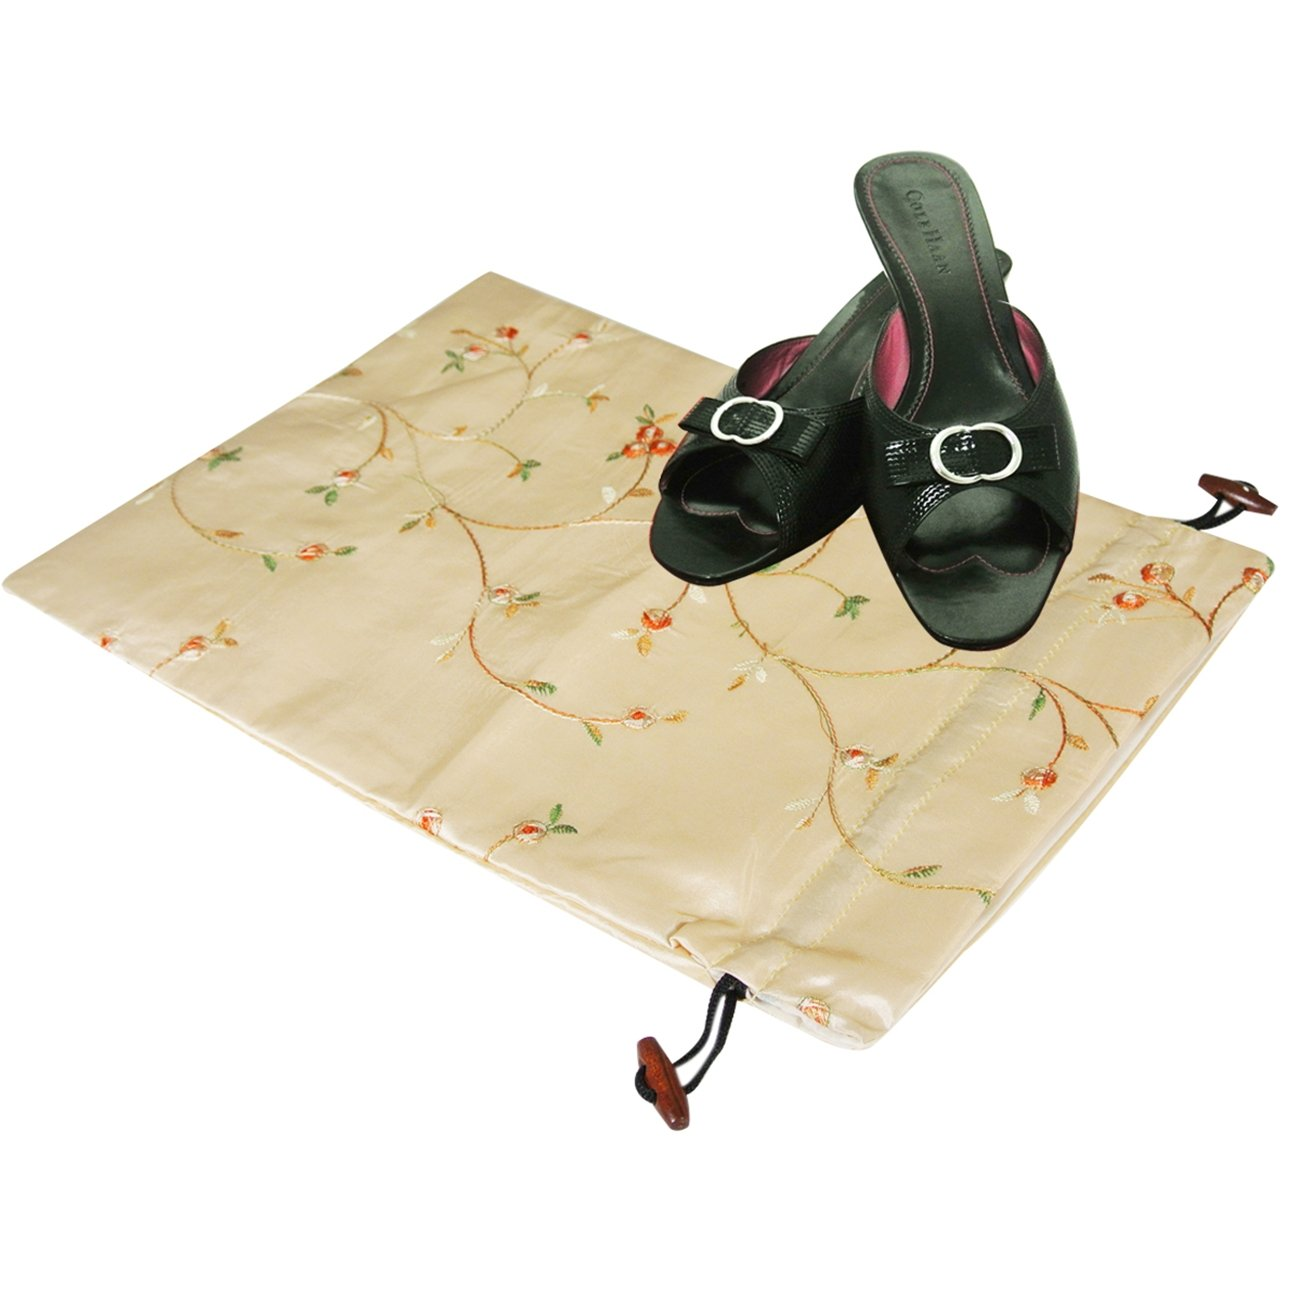 Wrapables Beautiful Embroidered Silk Travel Bag for Lingerie and Shoes Beige